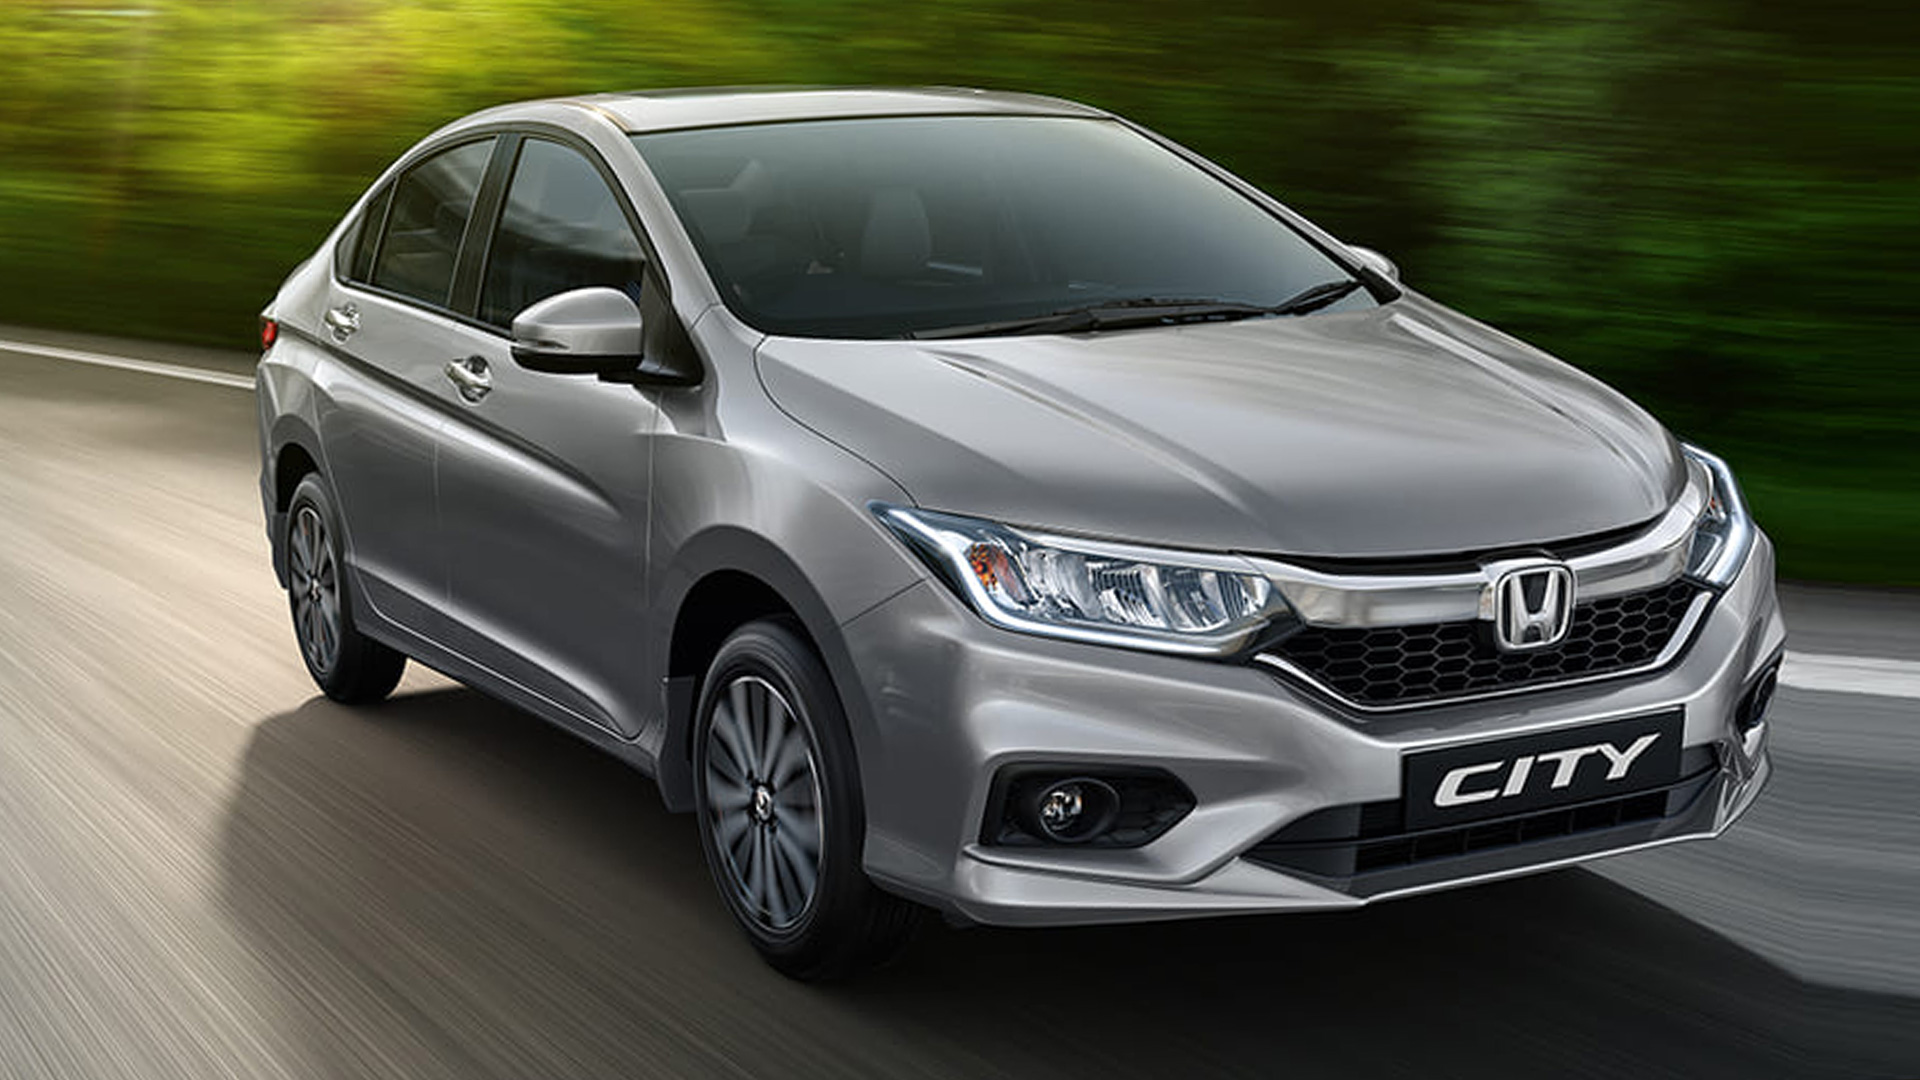 Honda City 2015 Petrol E MT